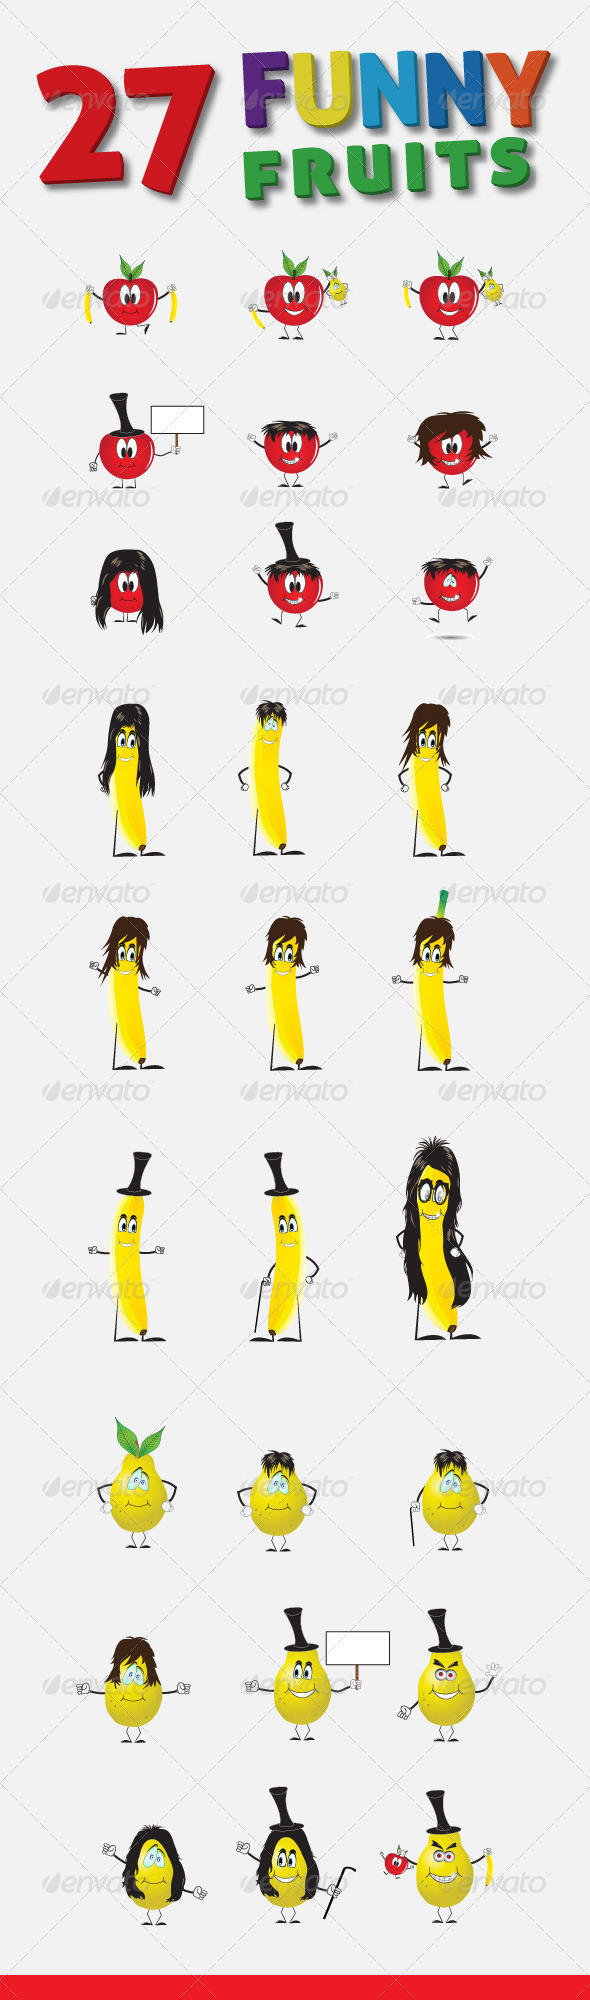 27 Funny Fruits Vector Characters